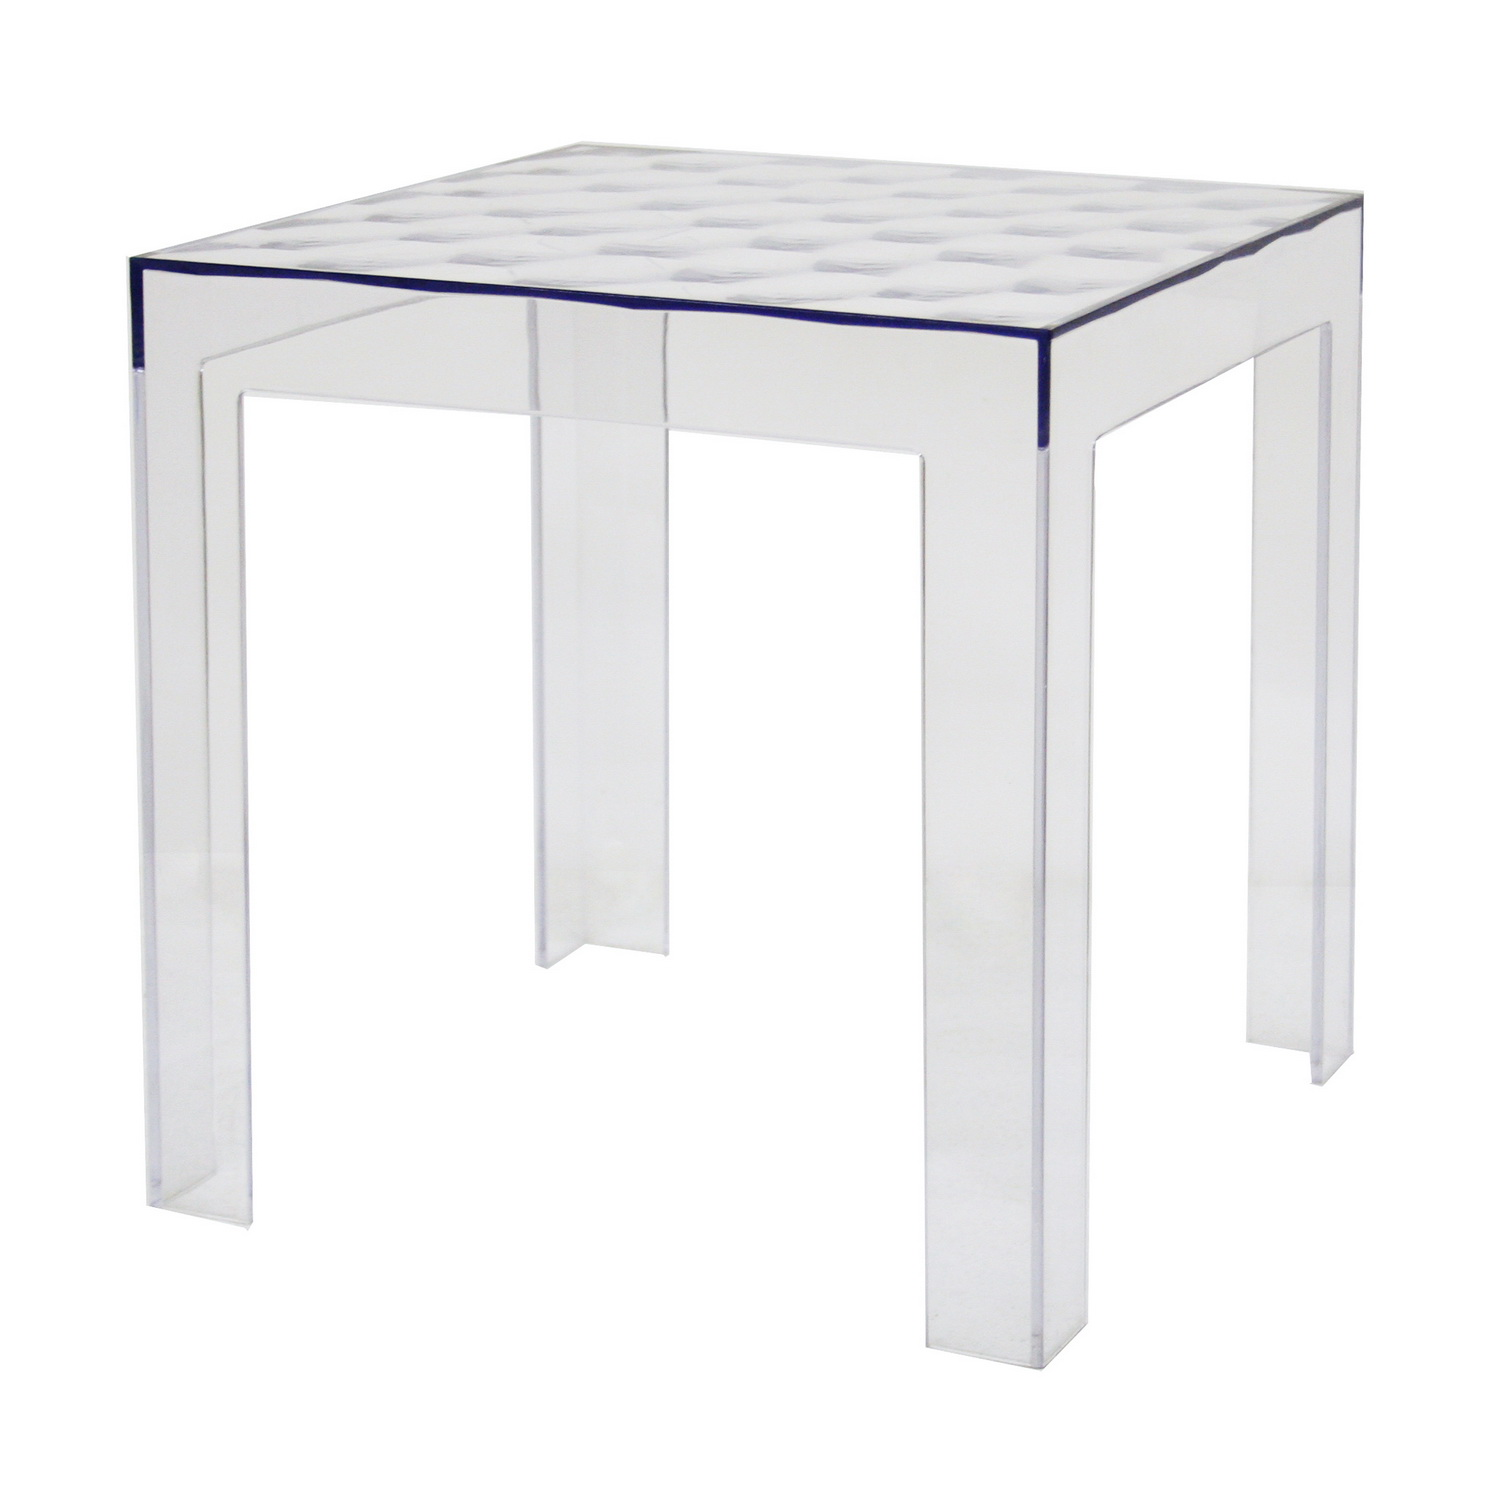 Furniture living room furniture table acrylic lucite - Table plexi design ...